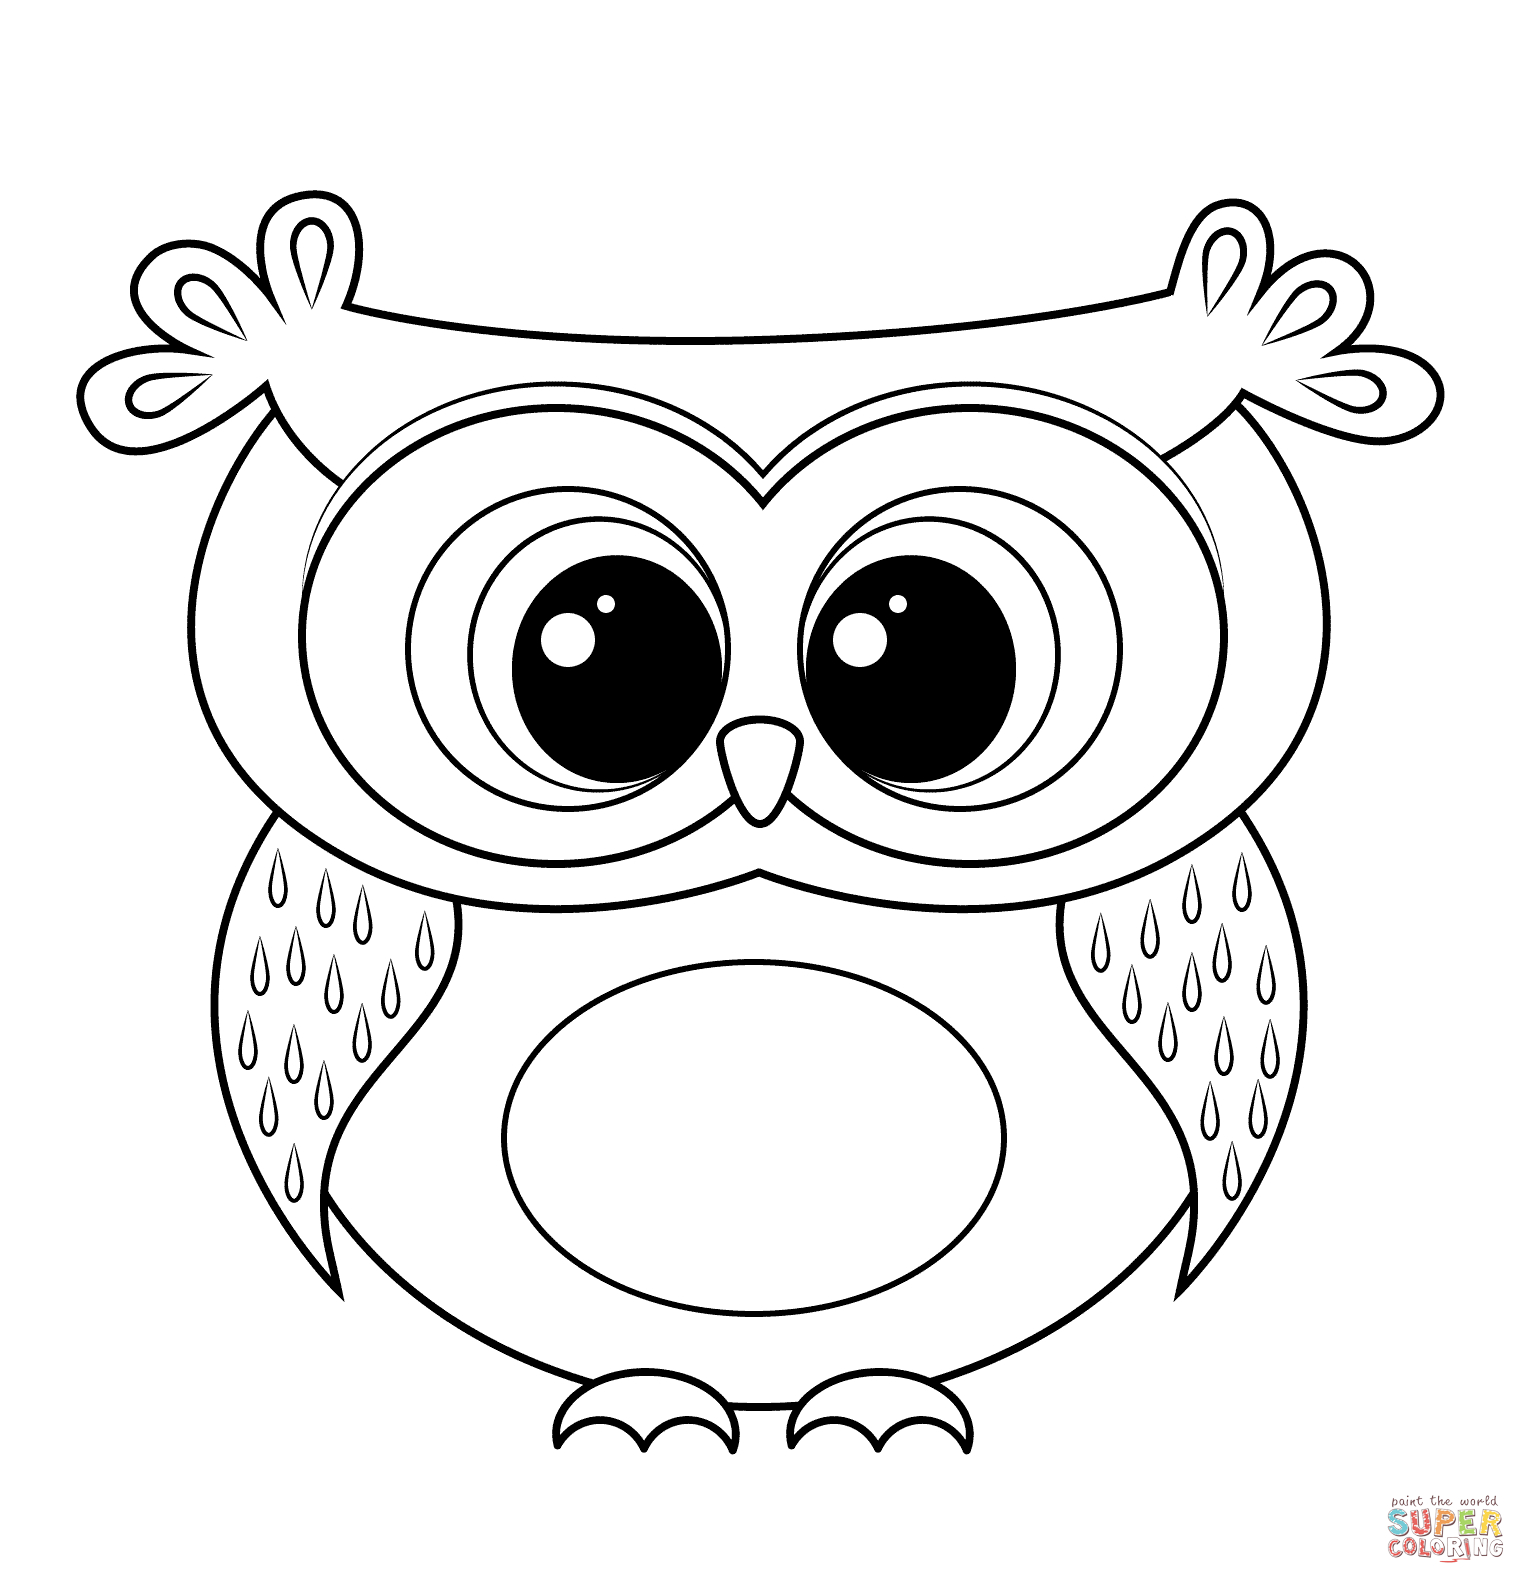 1526x1584 Owl Cartoon Drawing Cartoon Owl Coloring Page Free Printable